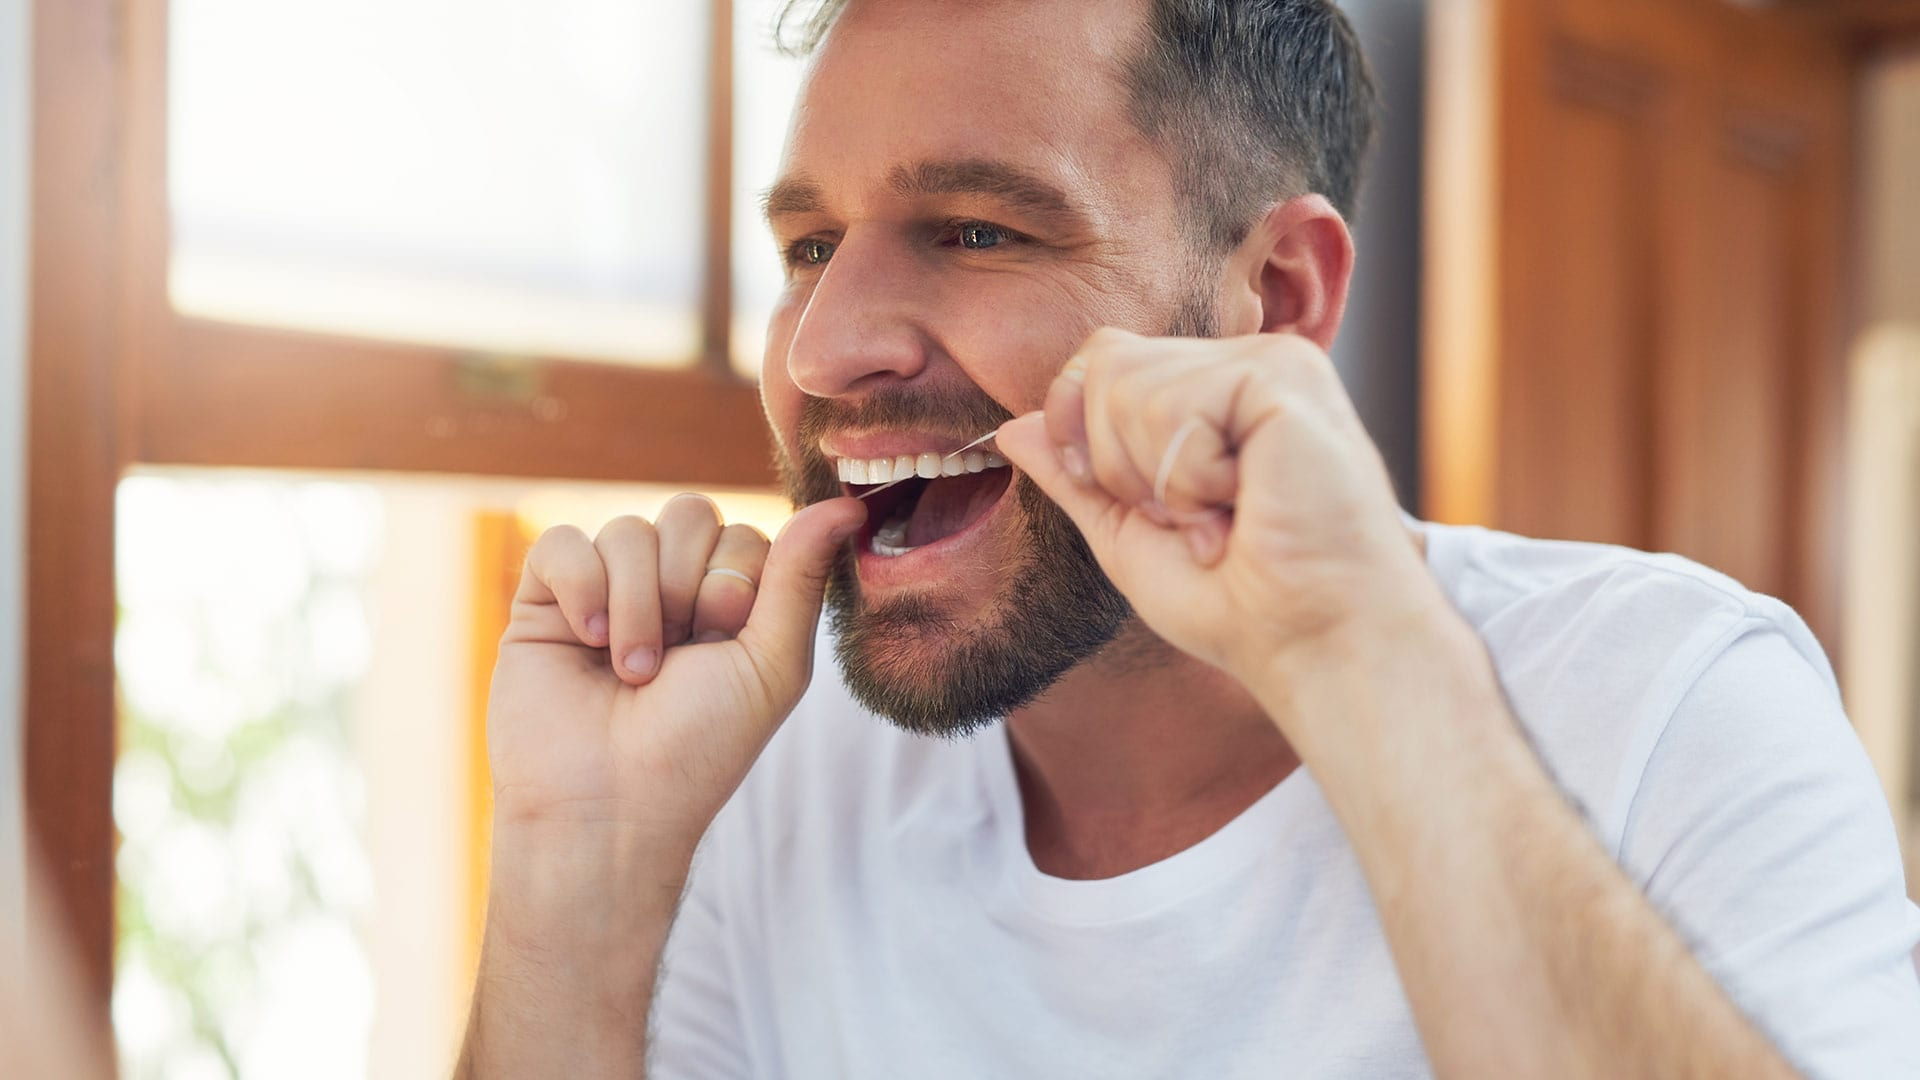 A man with healthy looking teeth and gums practices good dental hygiene by flossing in front of a mirror.